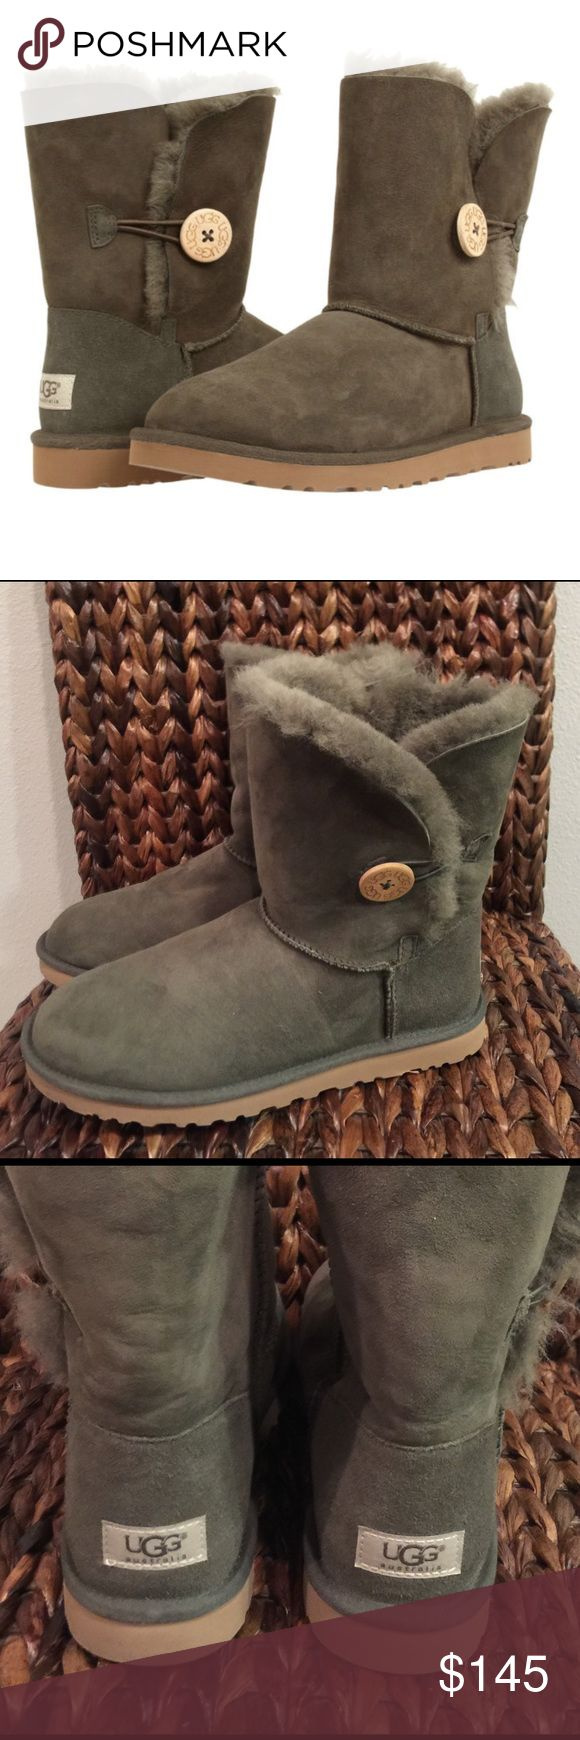 1000 Ideas About Ugg Boots On Pinterest Uggs Women S